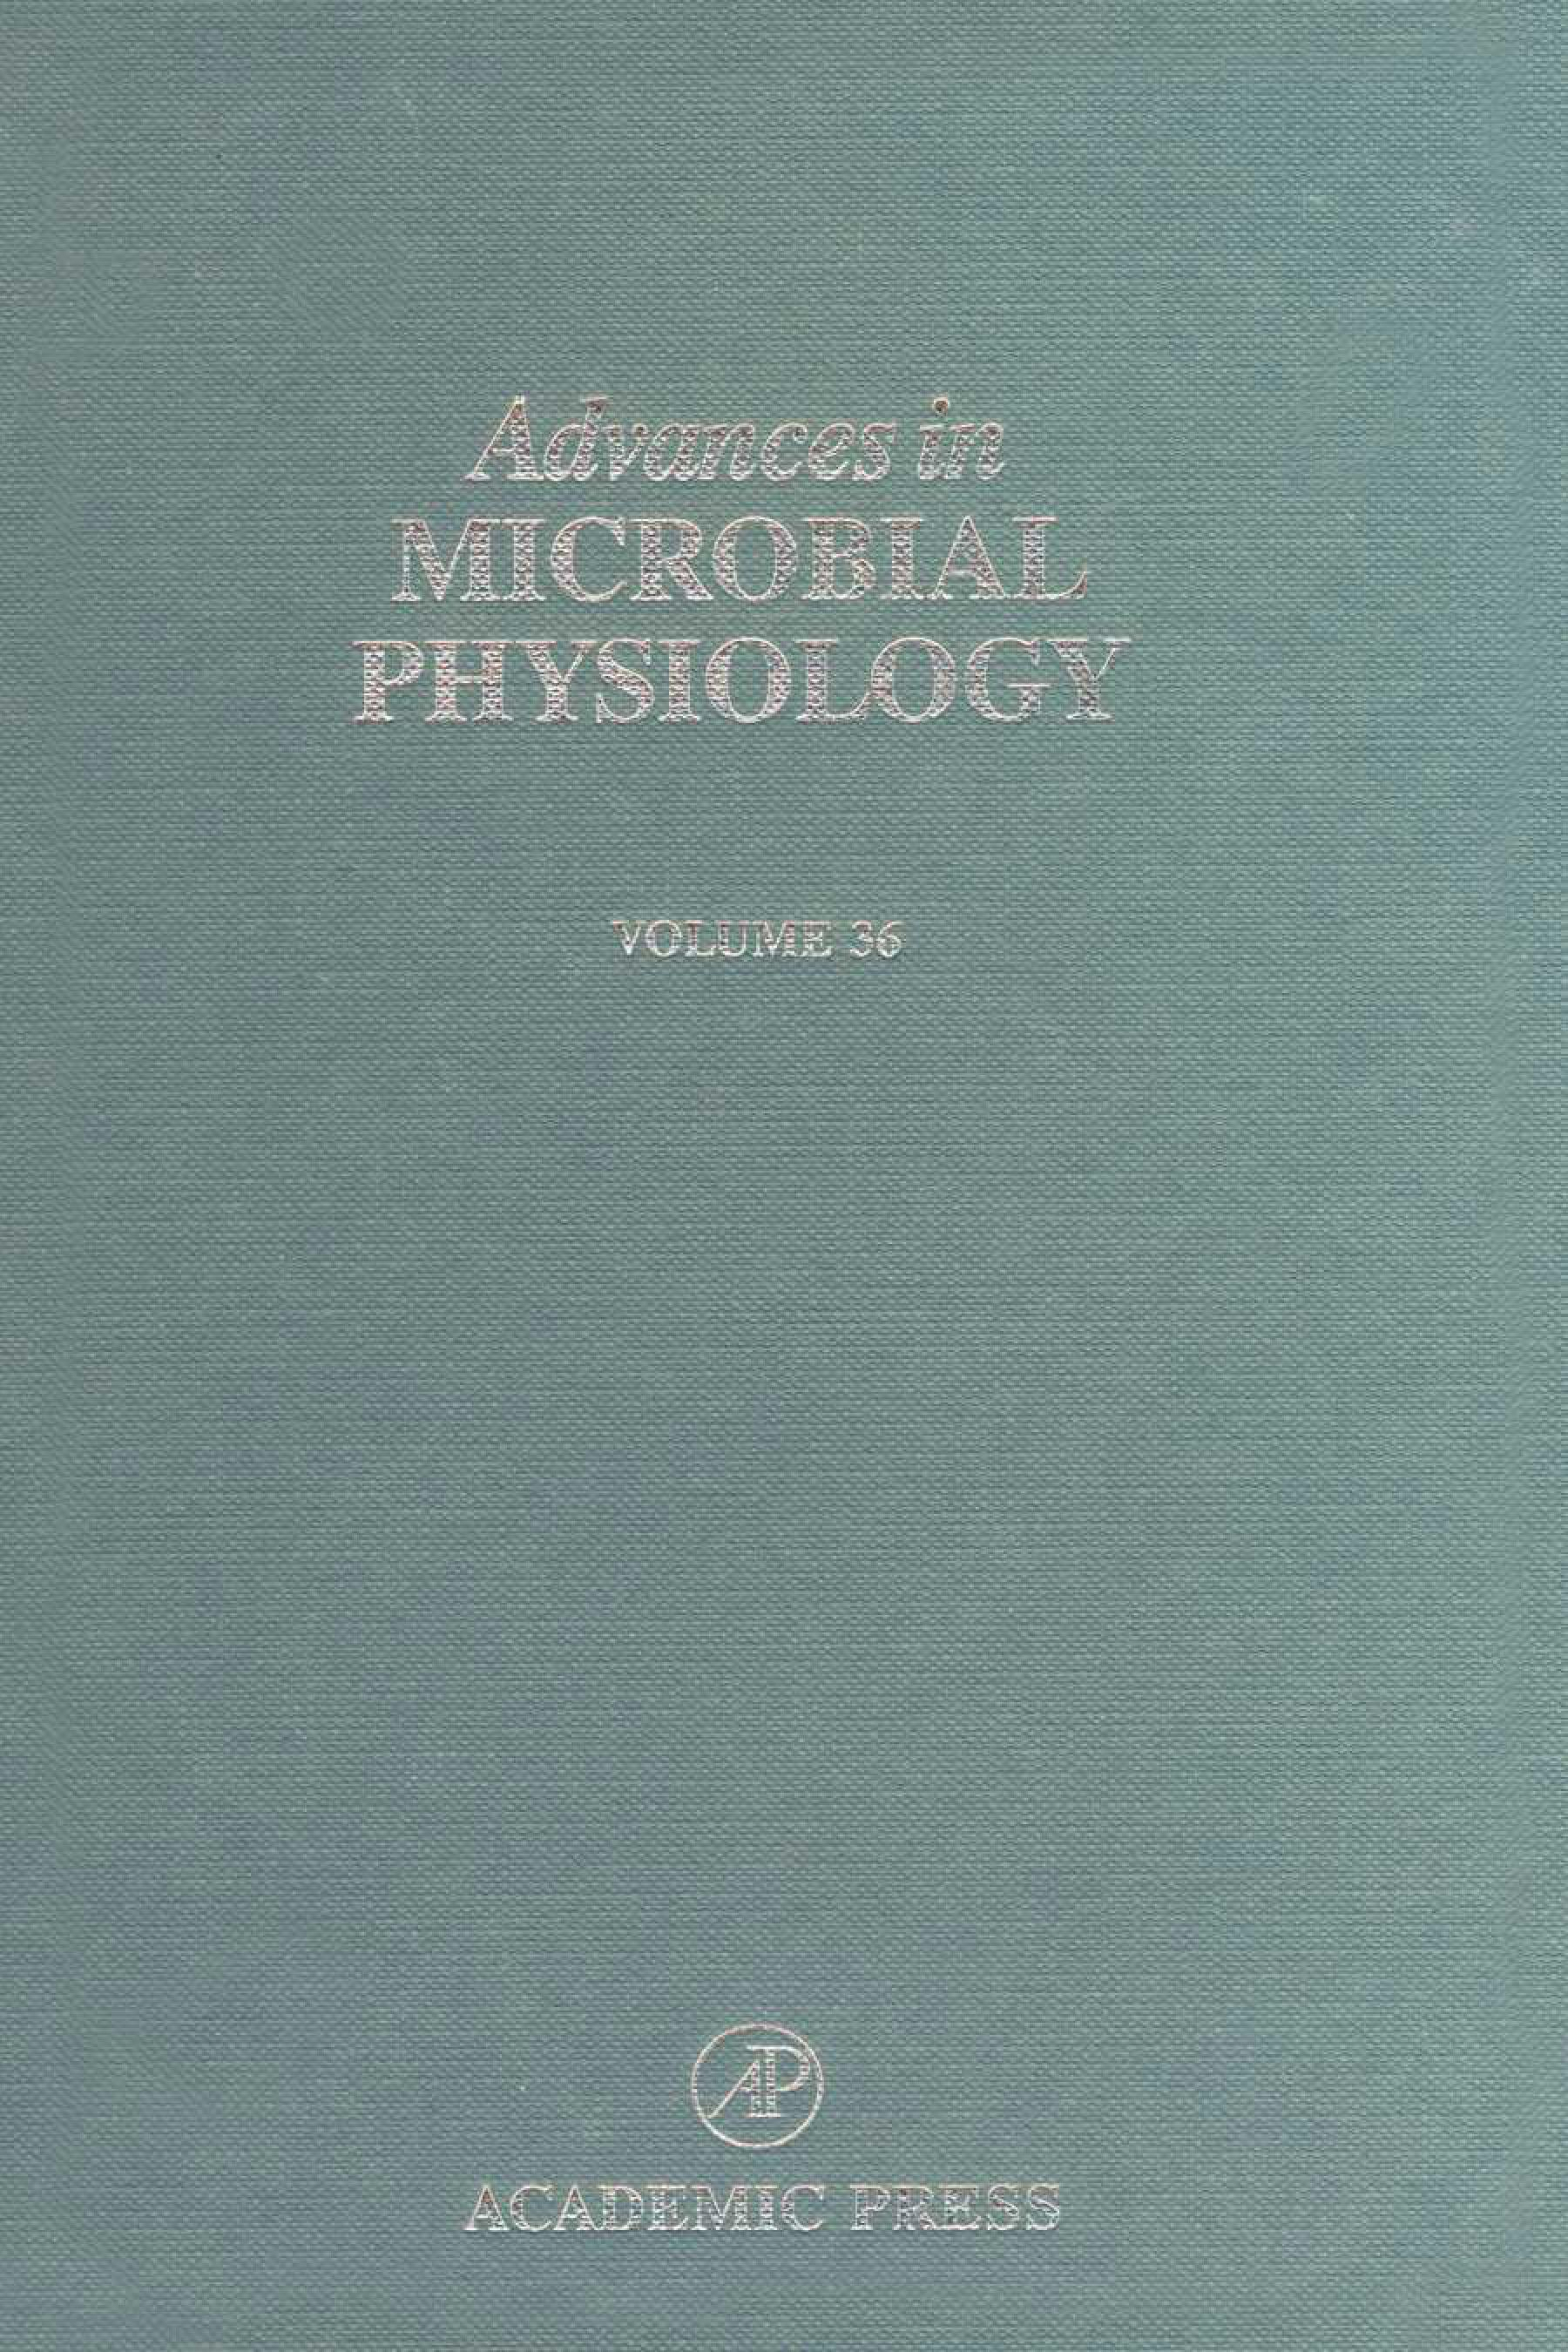 Advances in Microbial Physiology: Volume 36 EB9780080579962